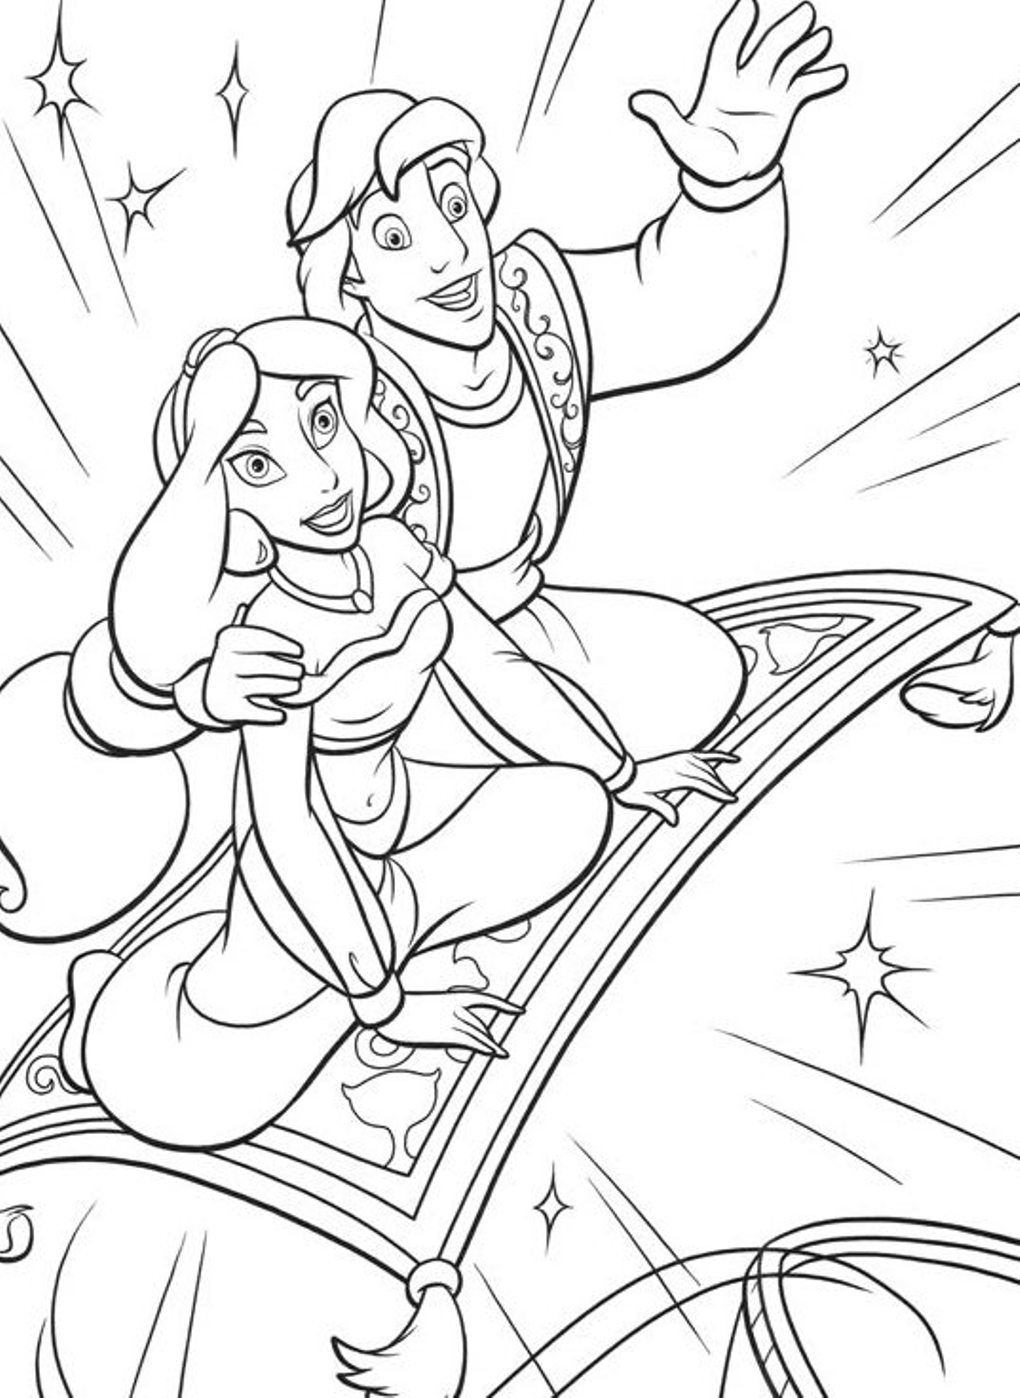 jazmin coloring pages - photo#23